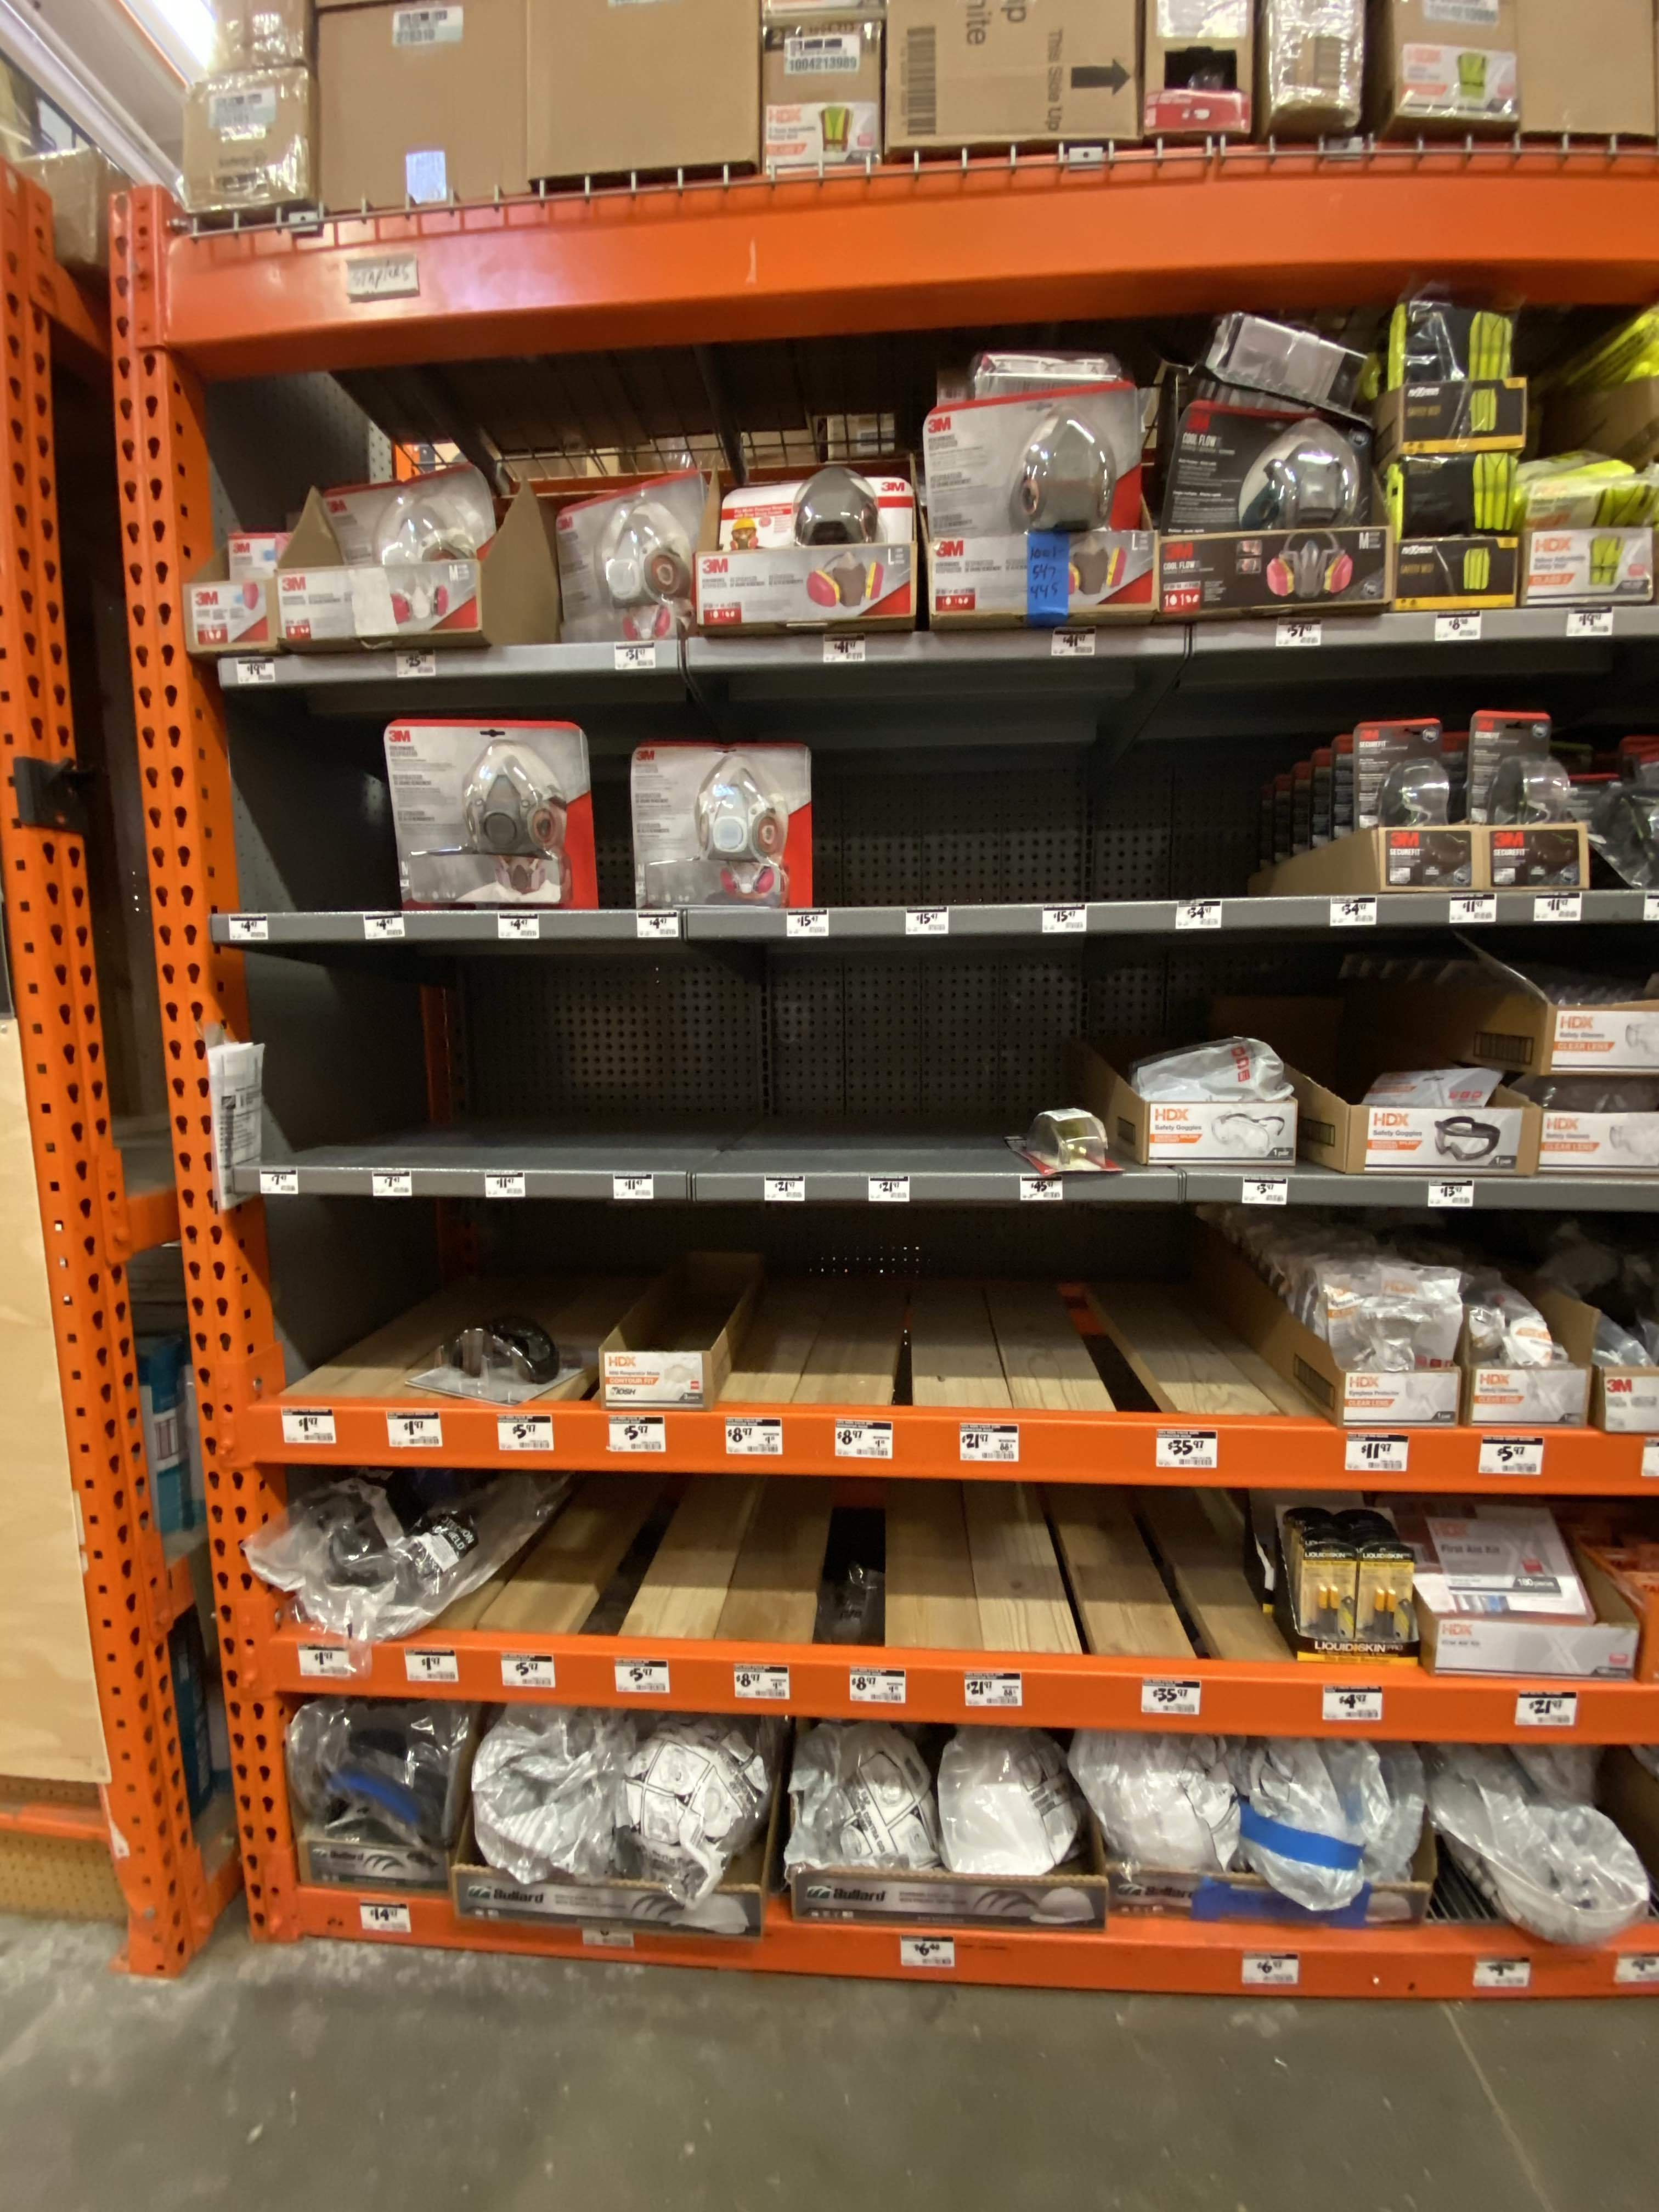 masks sold out at local Home Depot and drug store